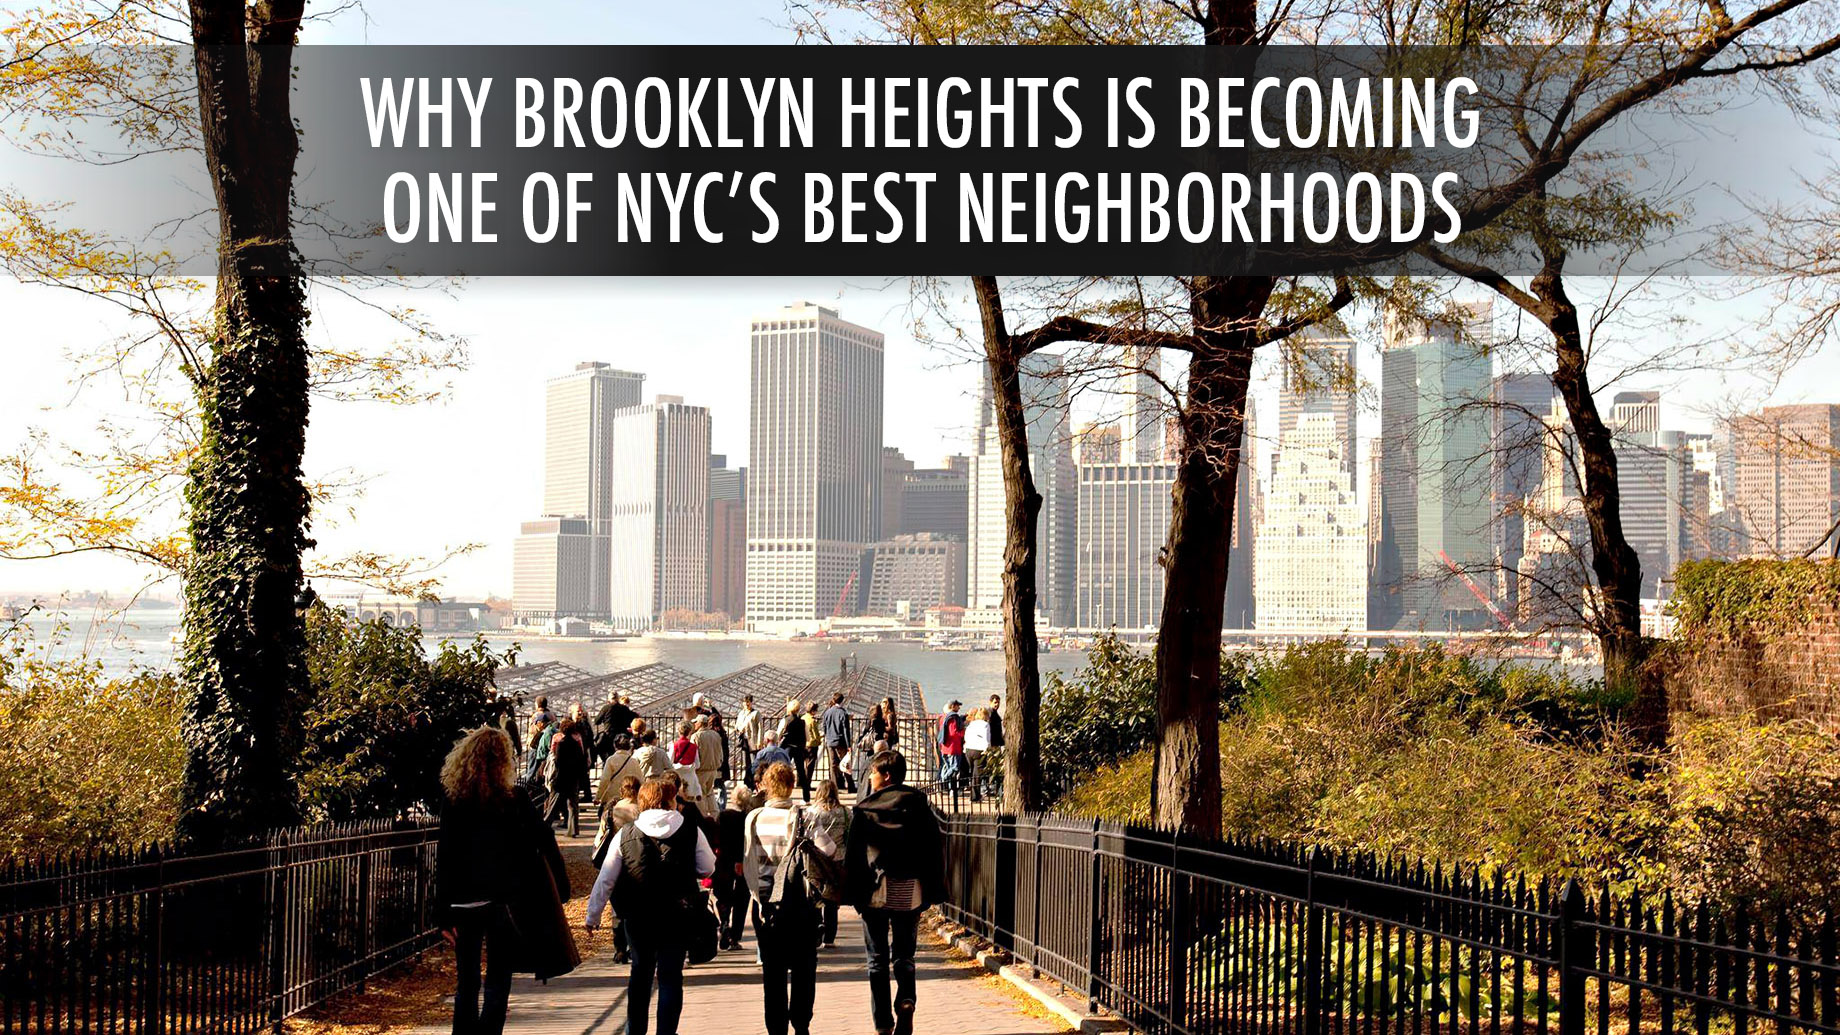 Why Brooklyn Heights is Becoming One of NYC's Best Neighborhoods